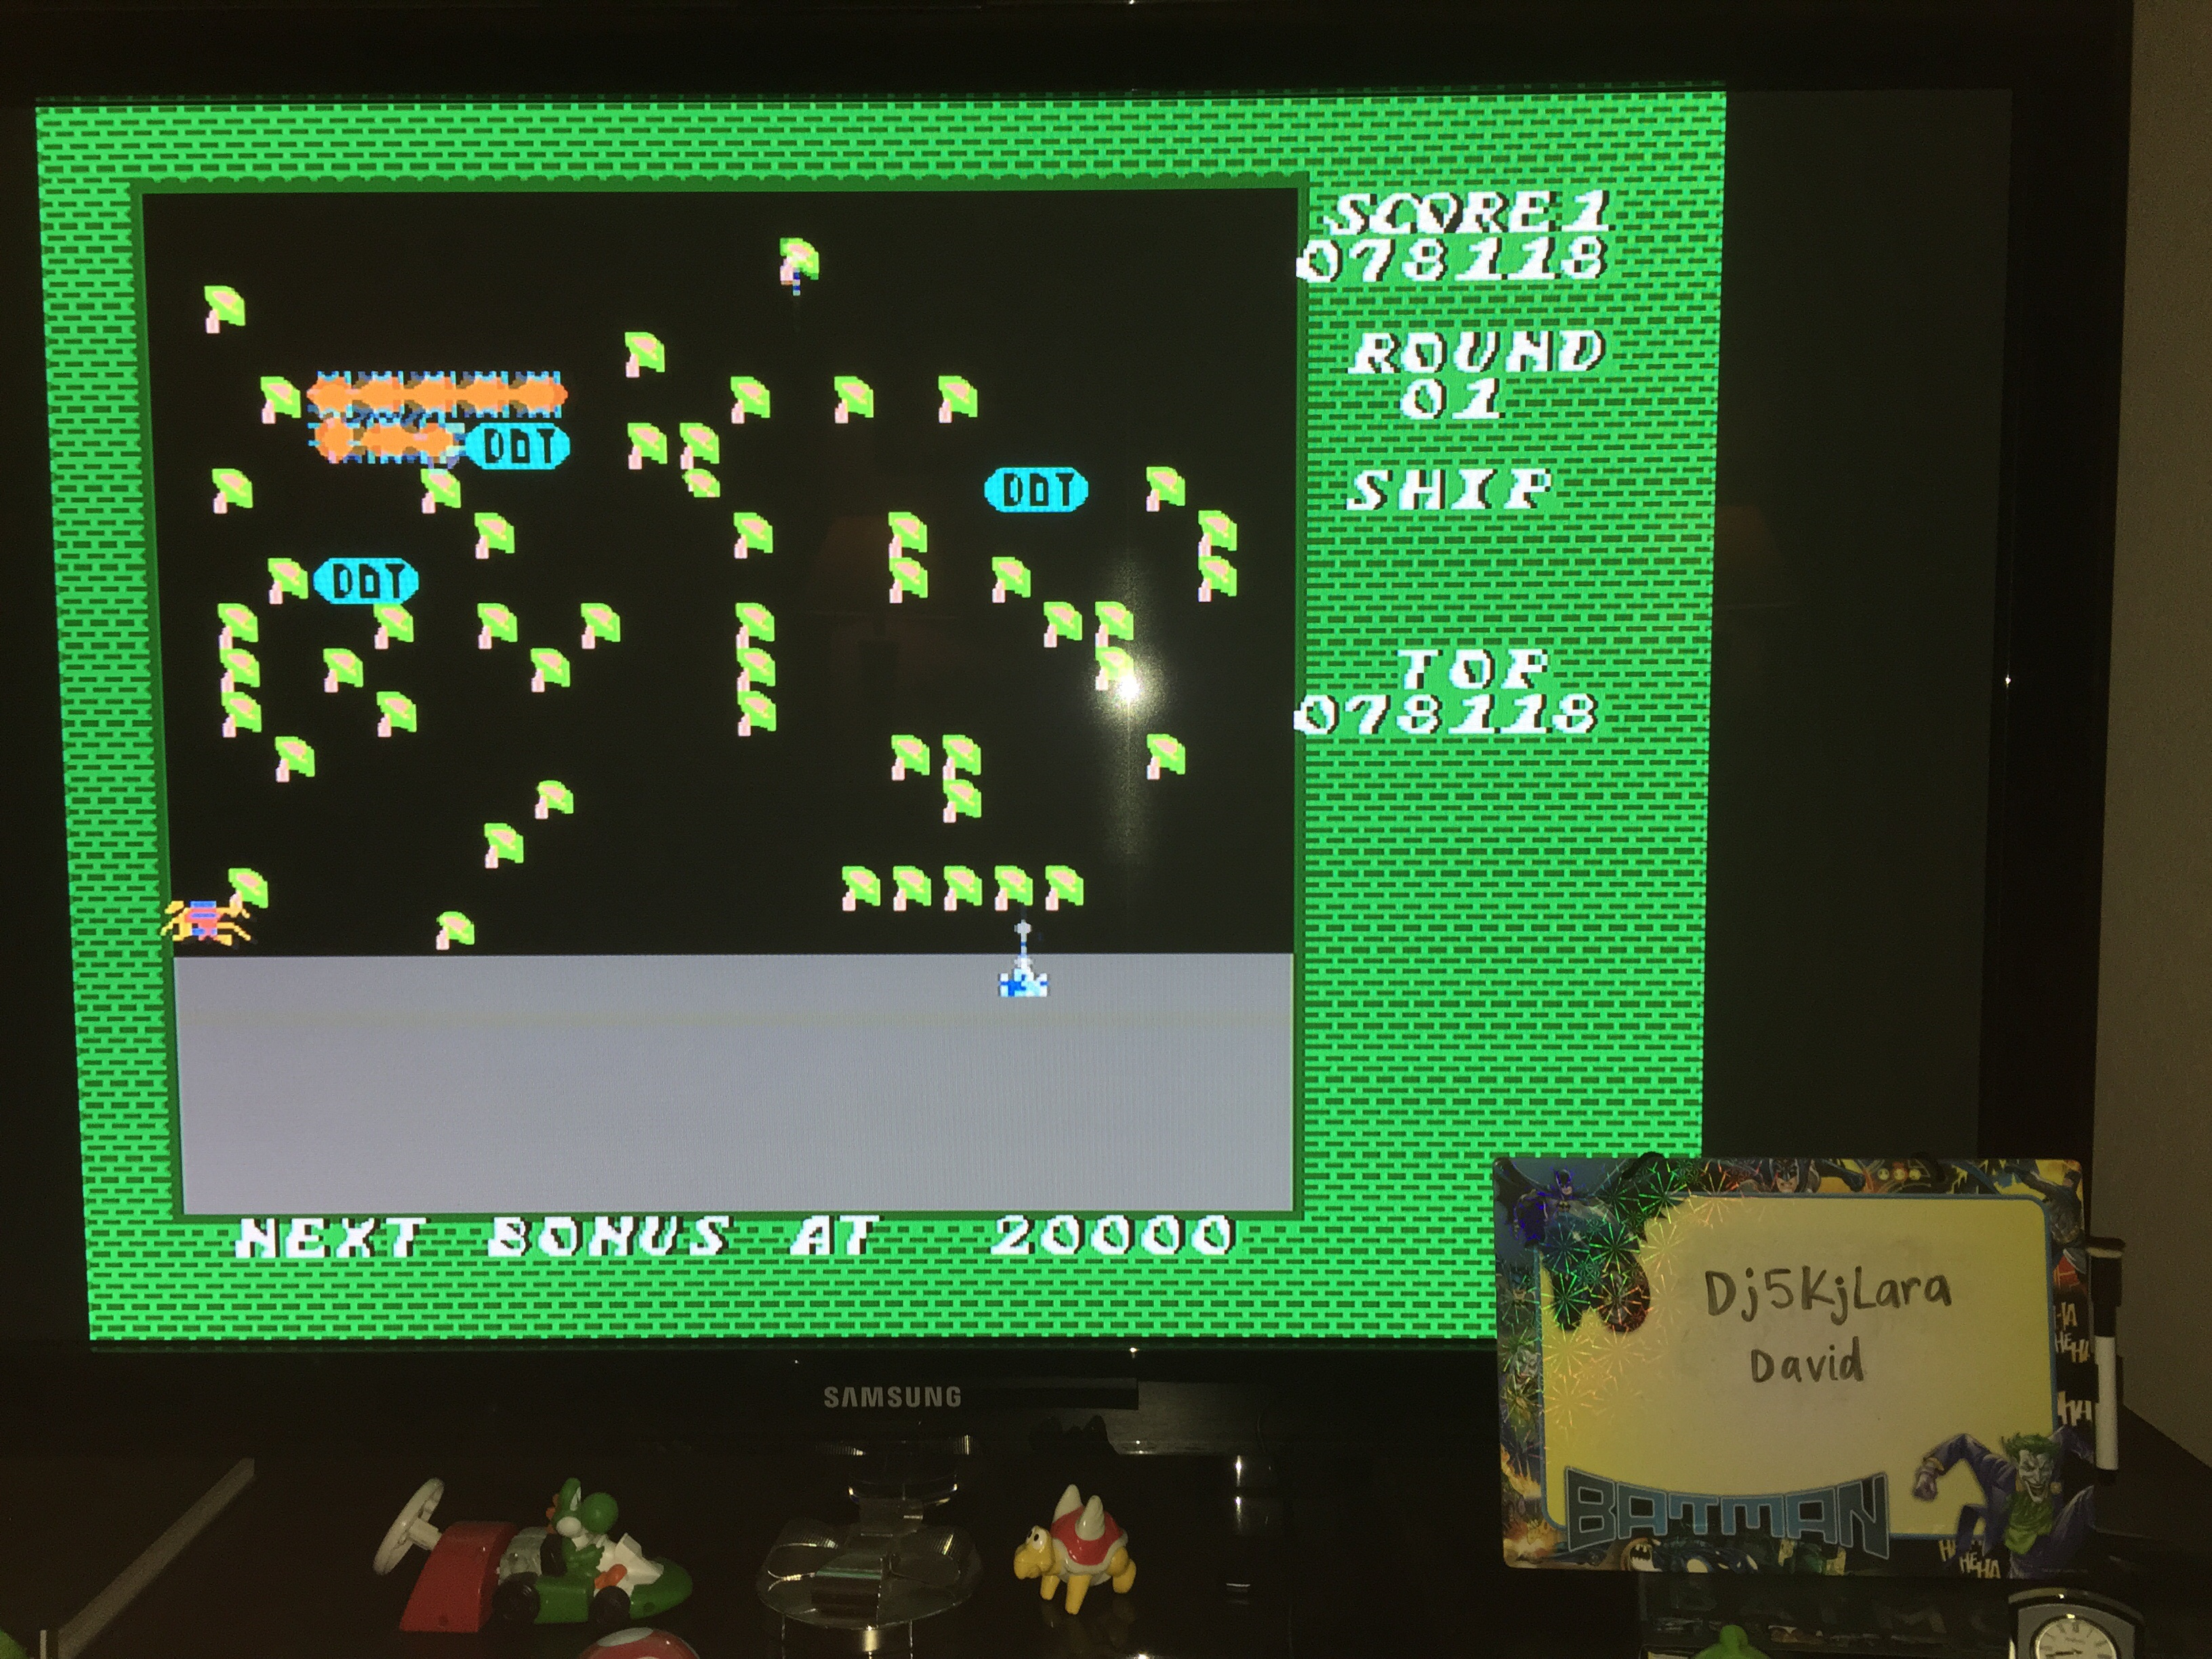 dj5kjlara: Millipede (NES/Famicom Emulated) 78,118 points on 2014-10-25 21:01:52